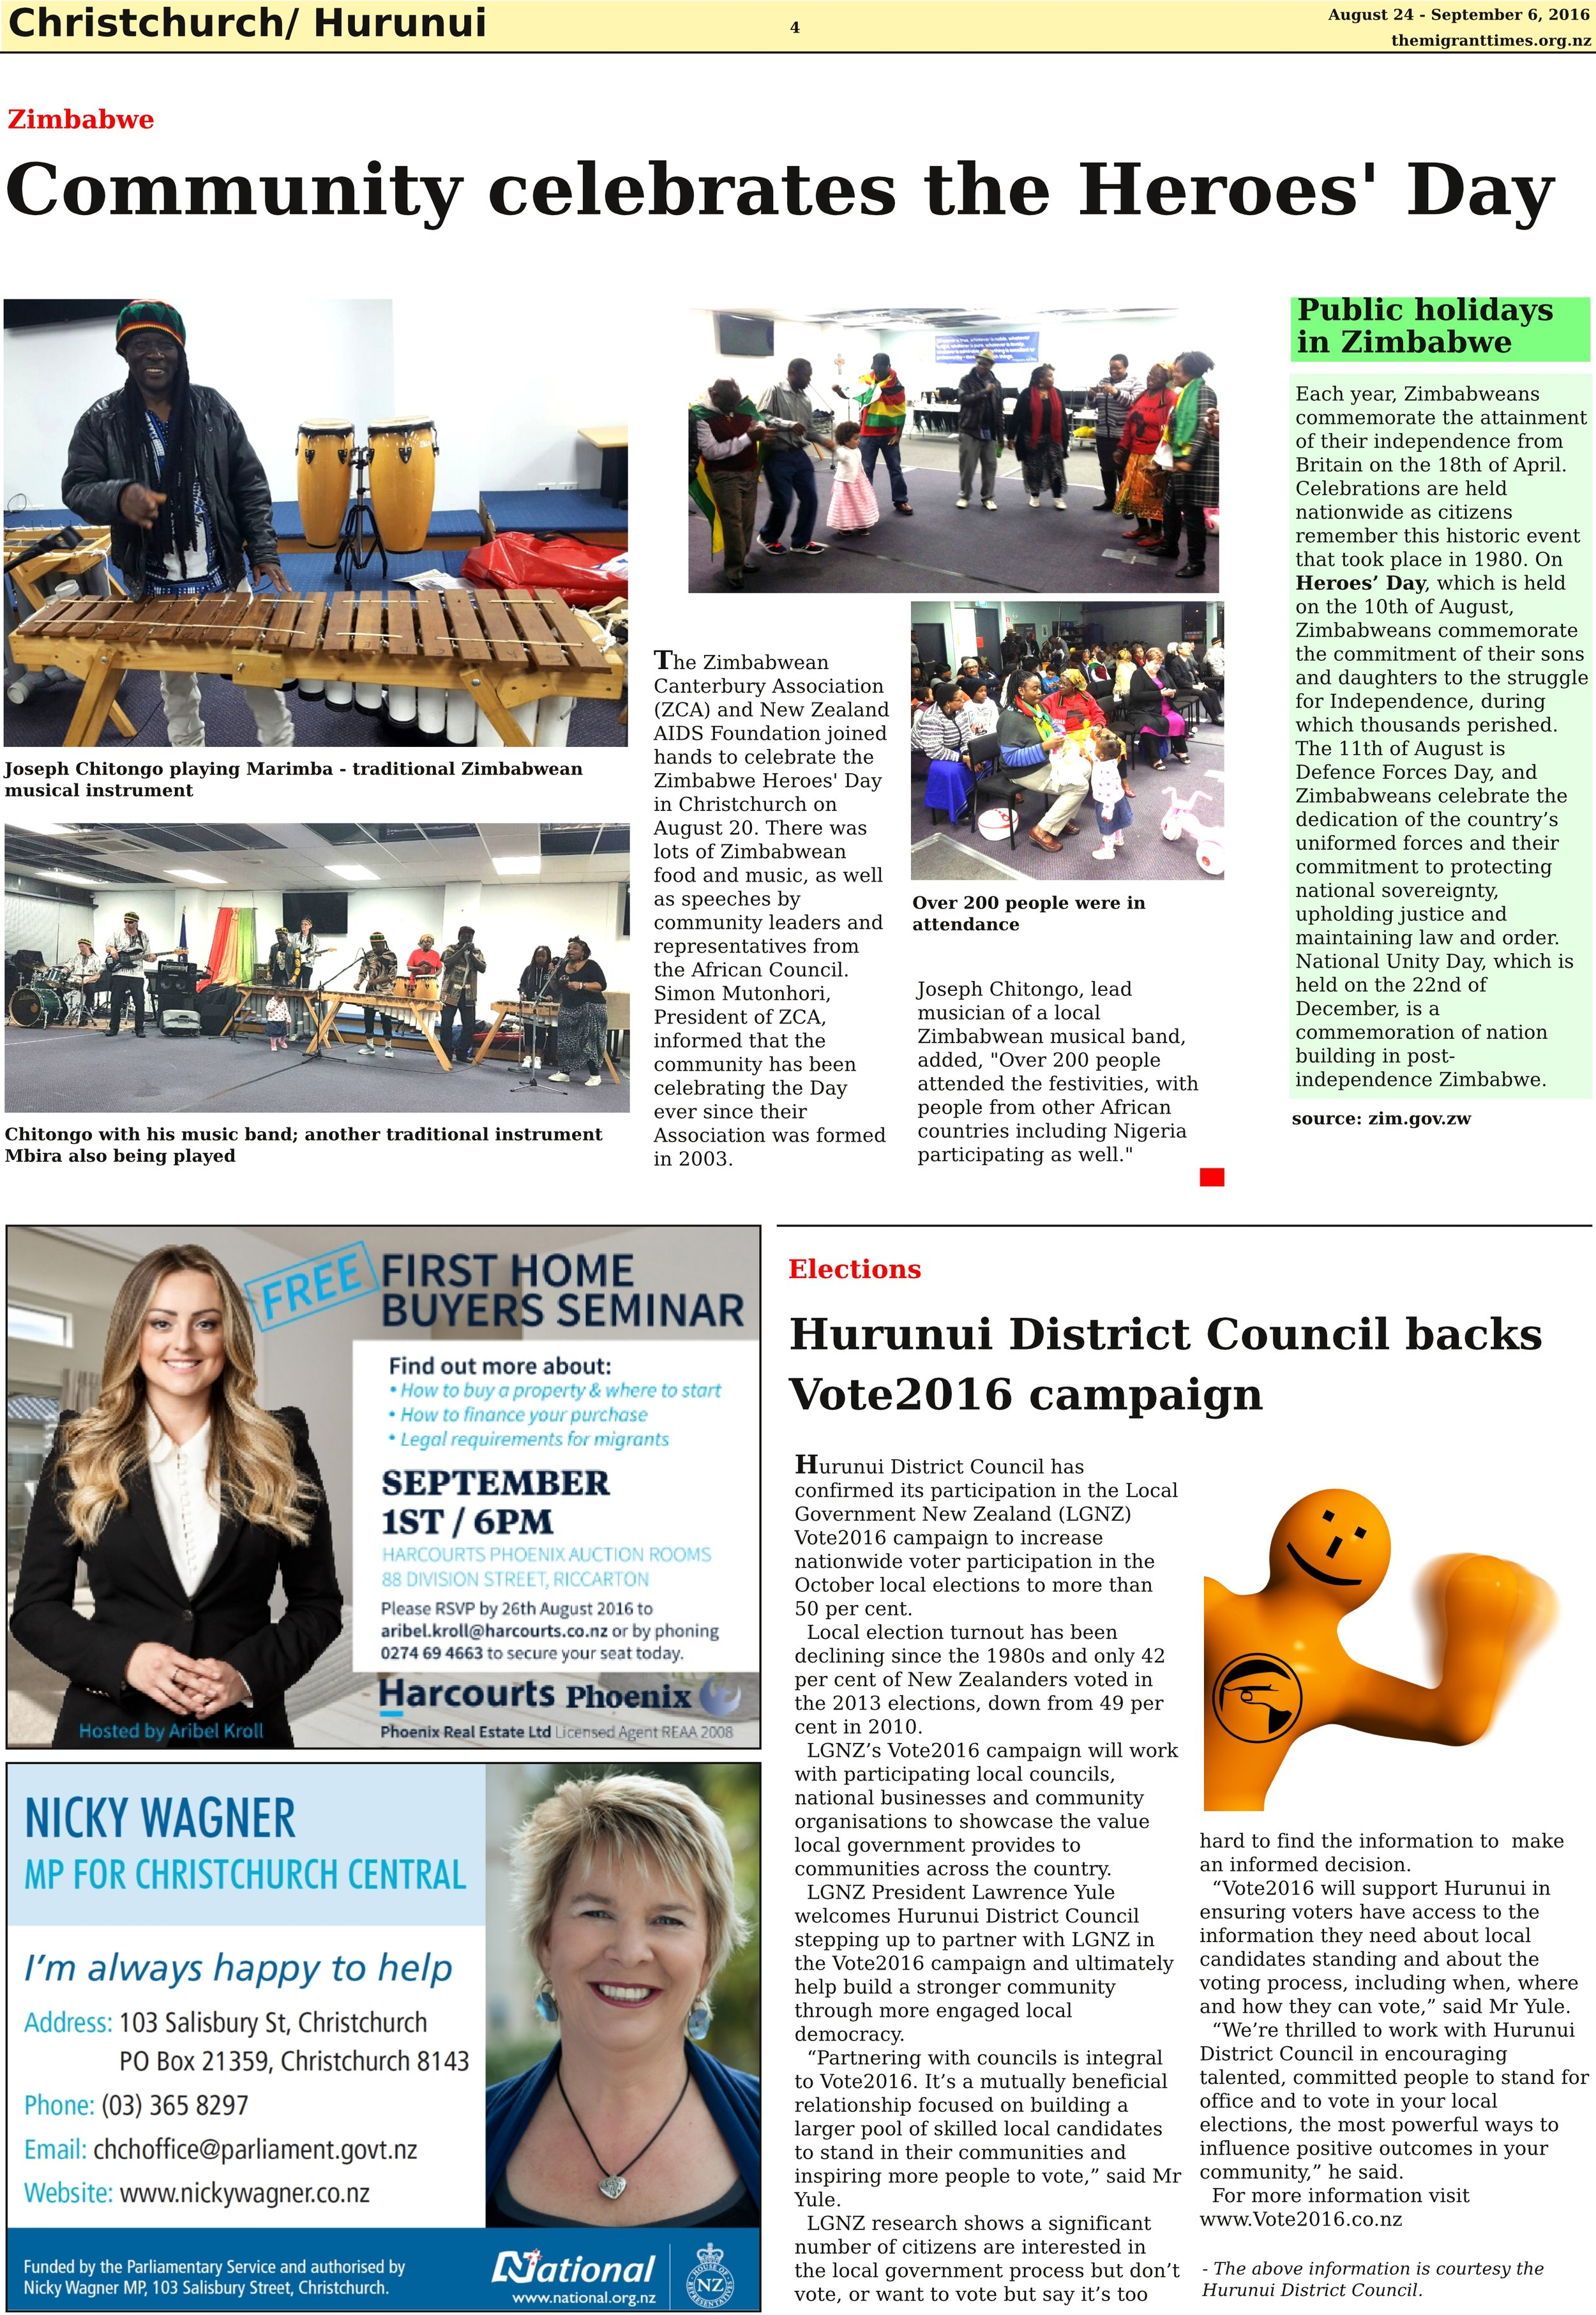 Click on the image to enlarge it and read the printed version of the story.